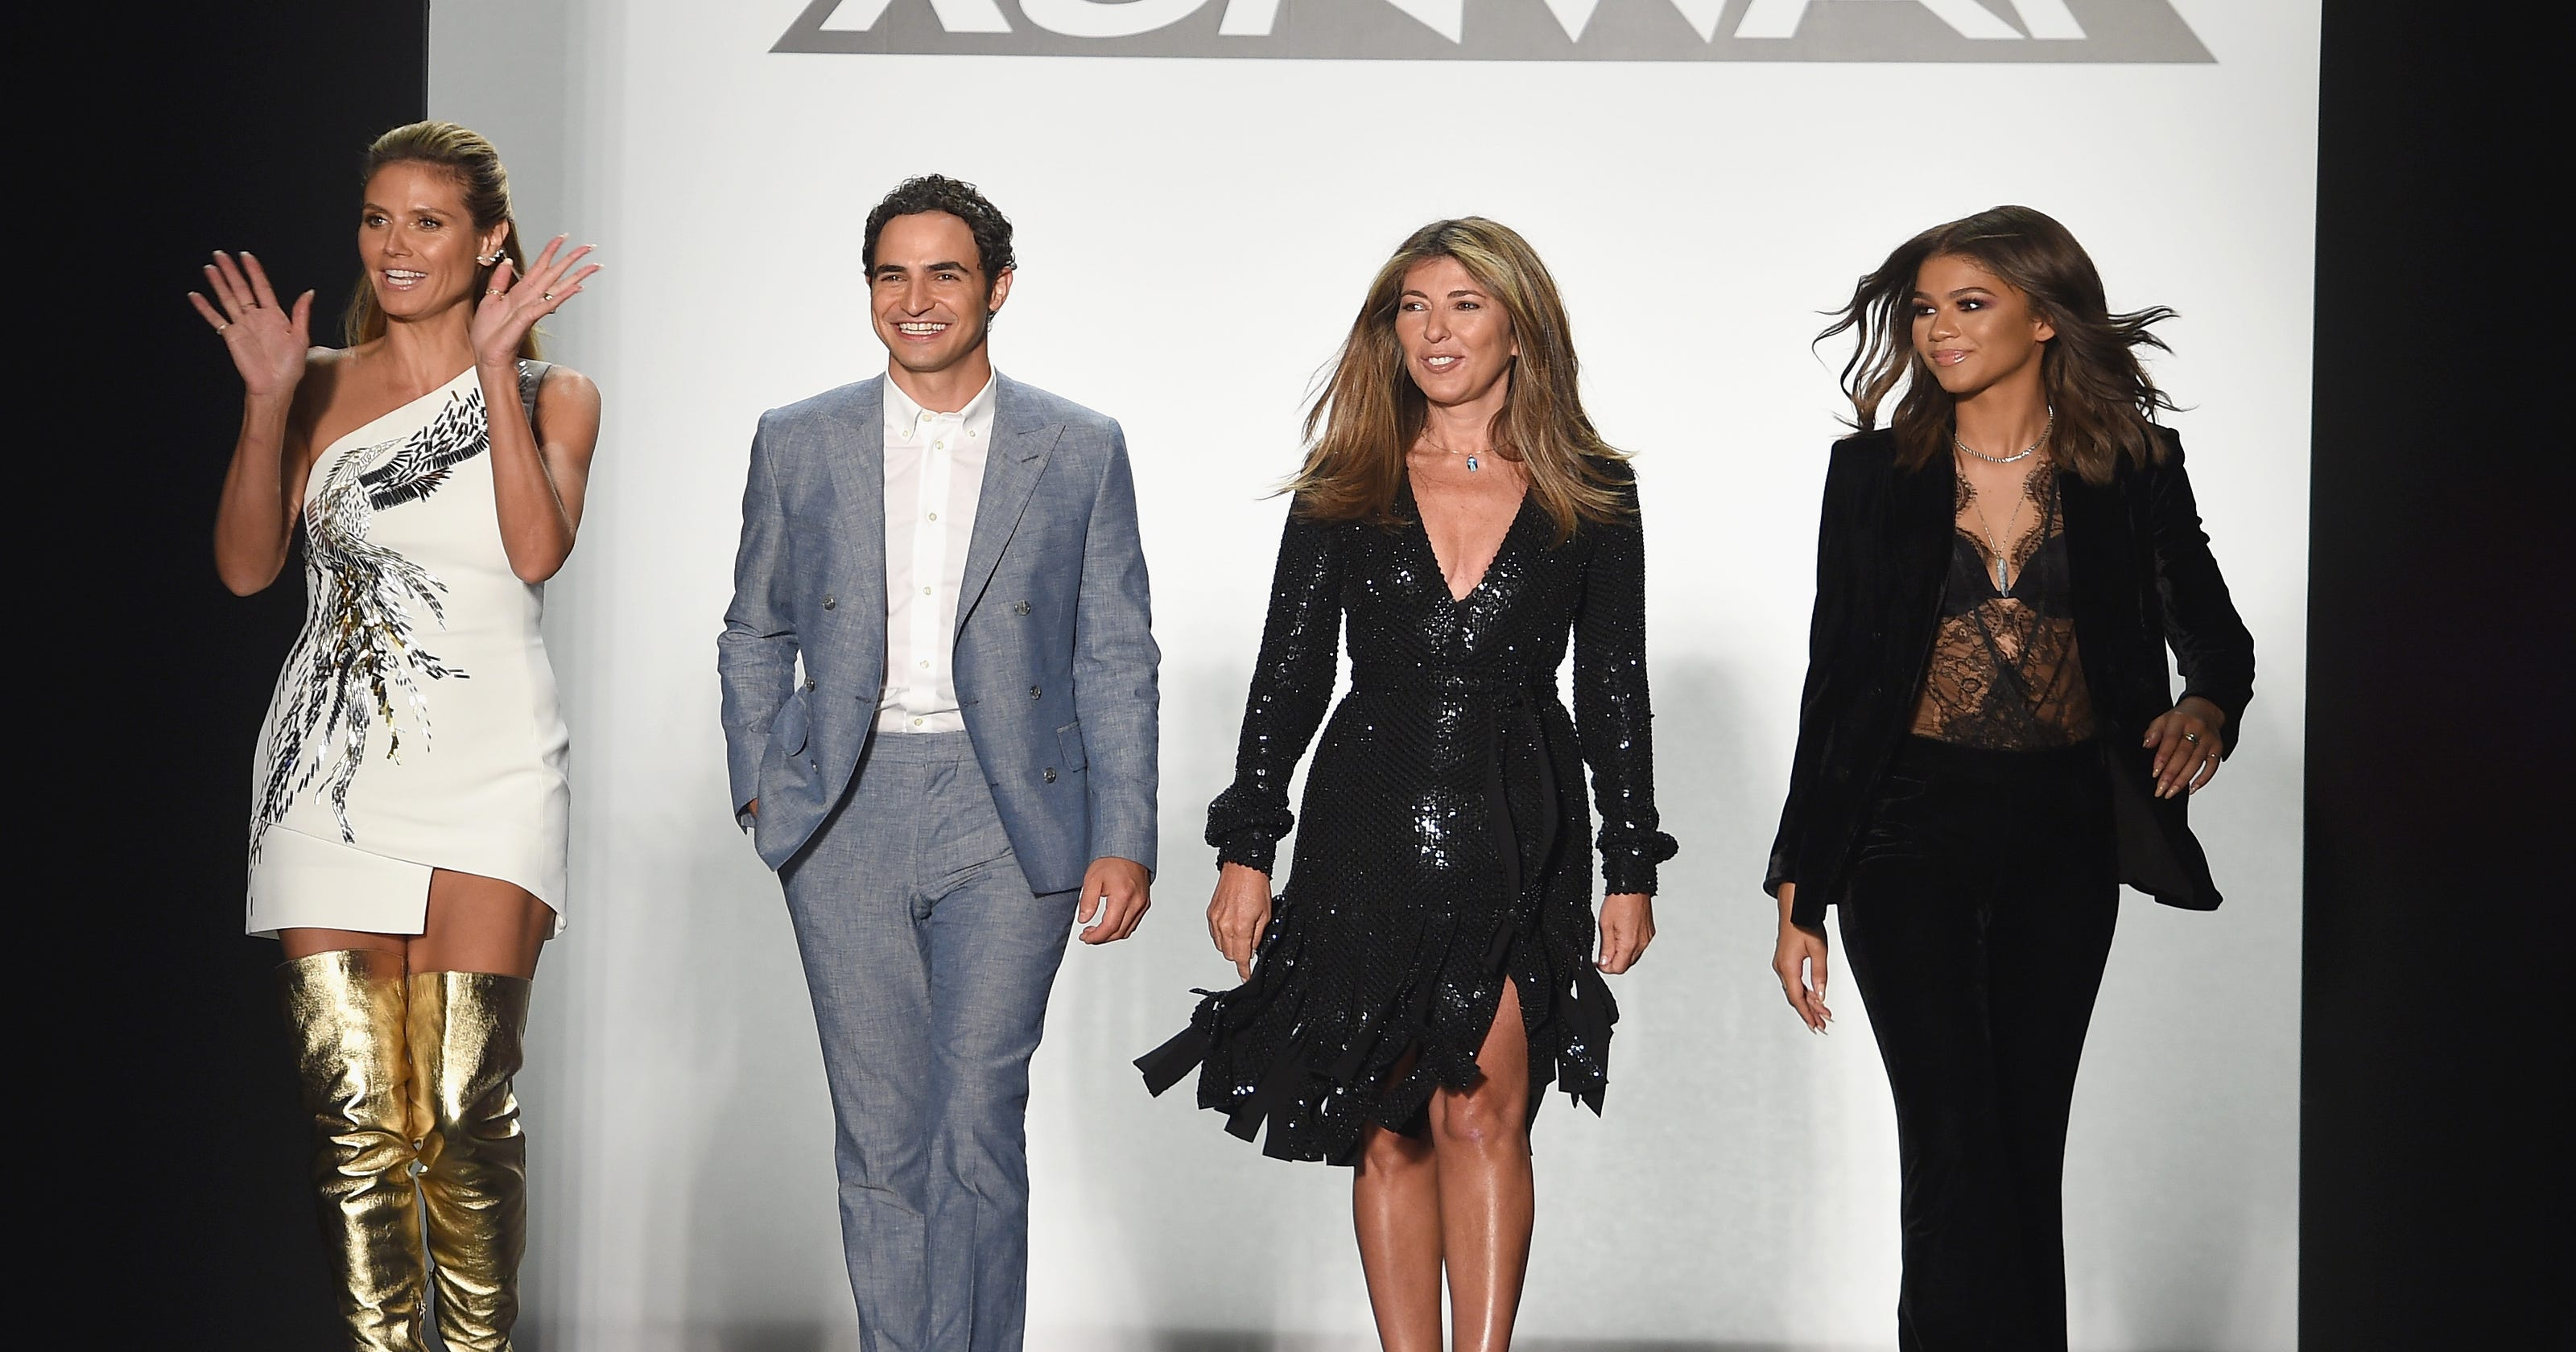 adbd005a2c1 J.C. Penney and  Project Runway  attempt to  make it work  with new  partnership